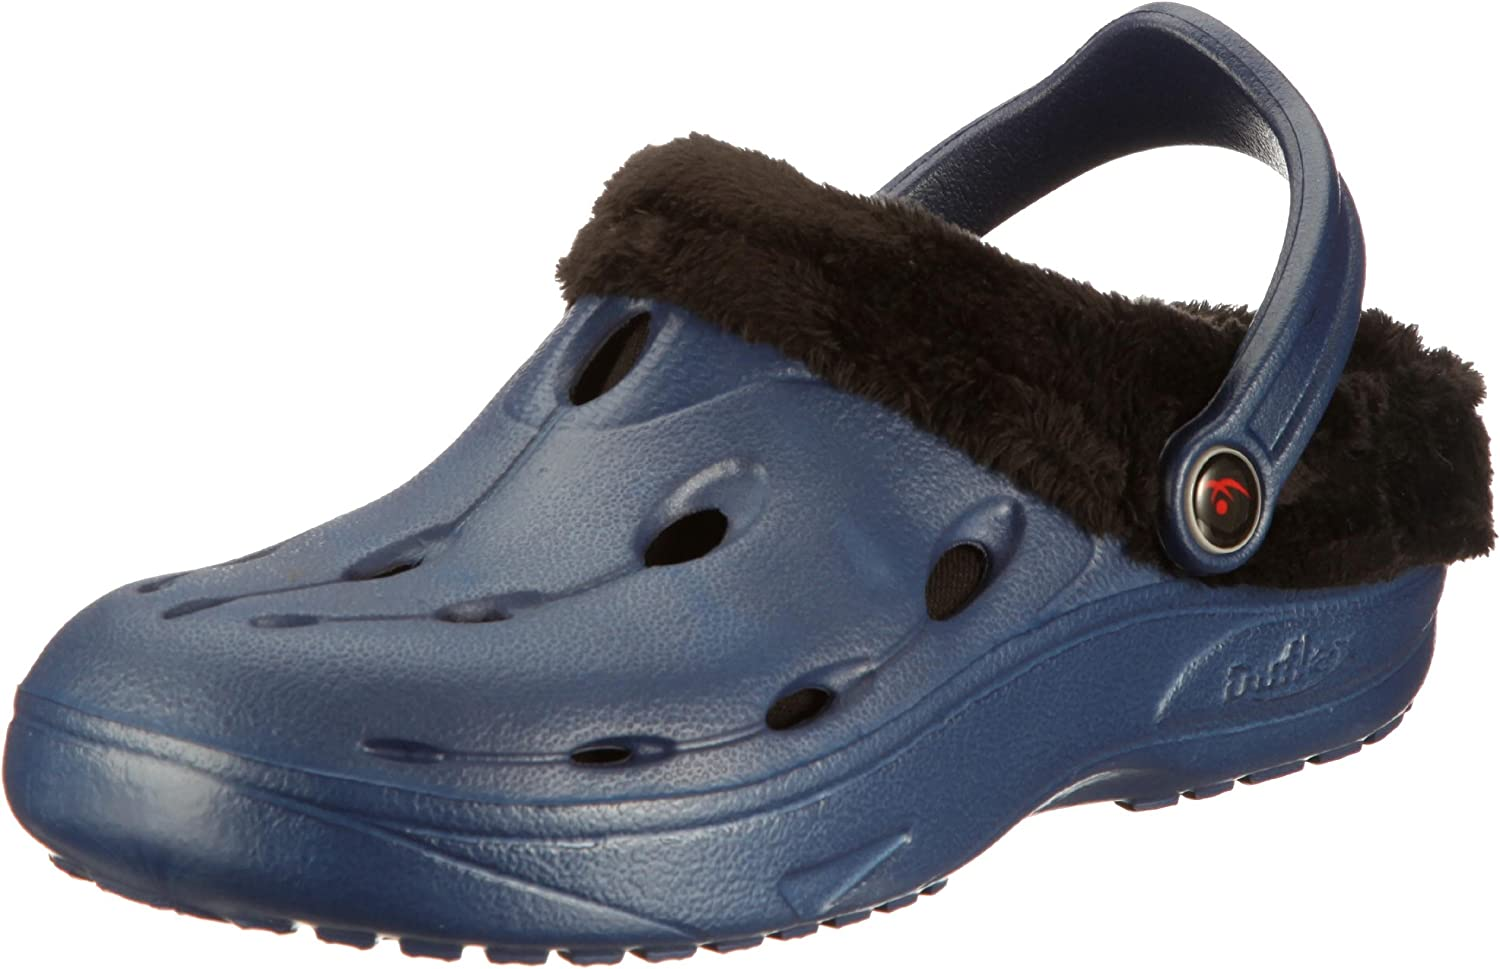 Chung -Shi Dux Heel-comforting, Resilient, Toxin-Free Clog with Warm Lining